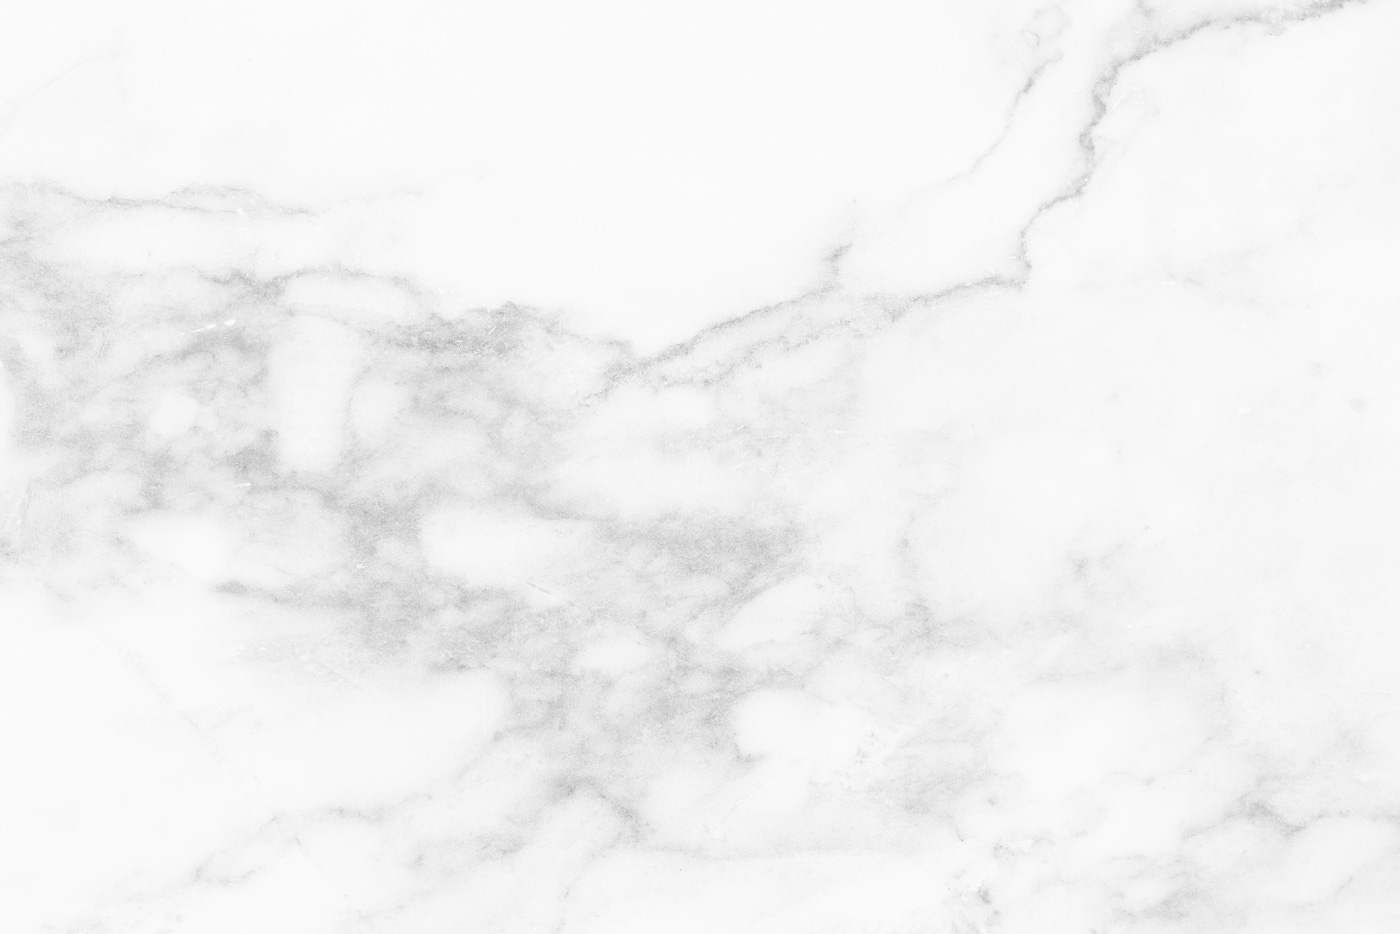 Clean Marble Texture